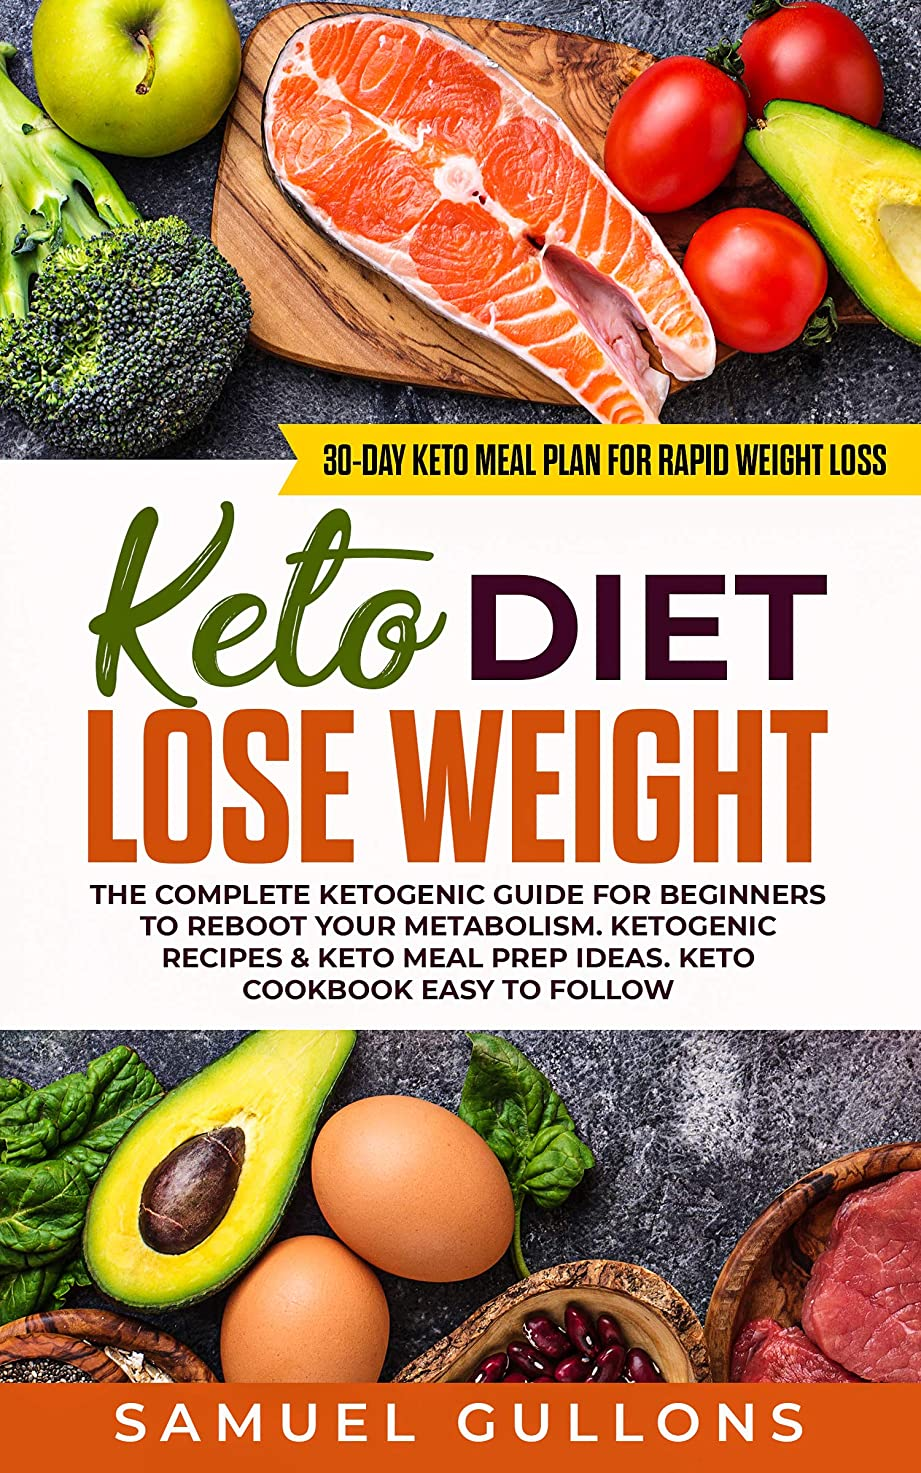 Keto Diet Lose Weight for beginners: The Keto Diet: 30-Day Keto Meal Plan for Rapid Weight Loss. The Complete Ketogenic guide for beginners to reboot your metabolism. (English Edition)